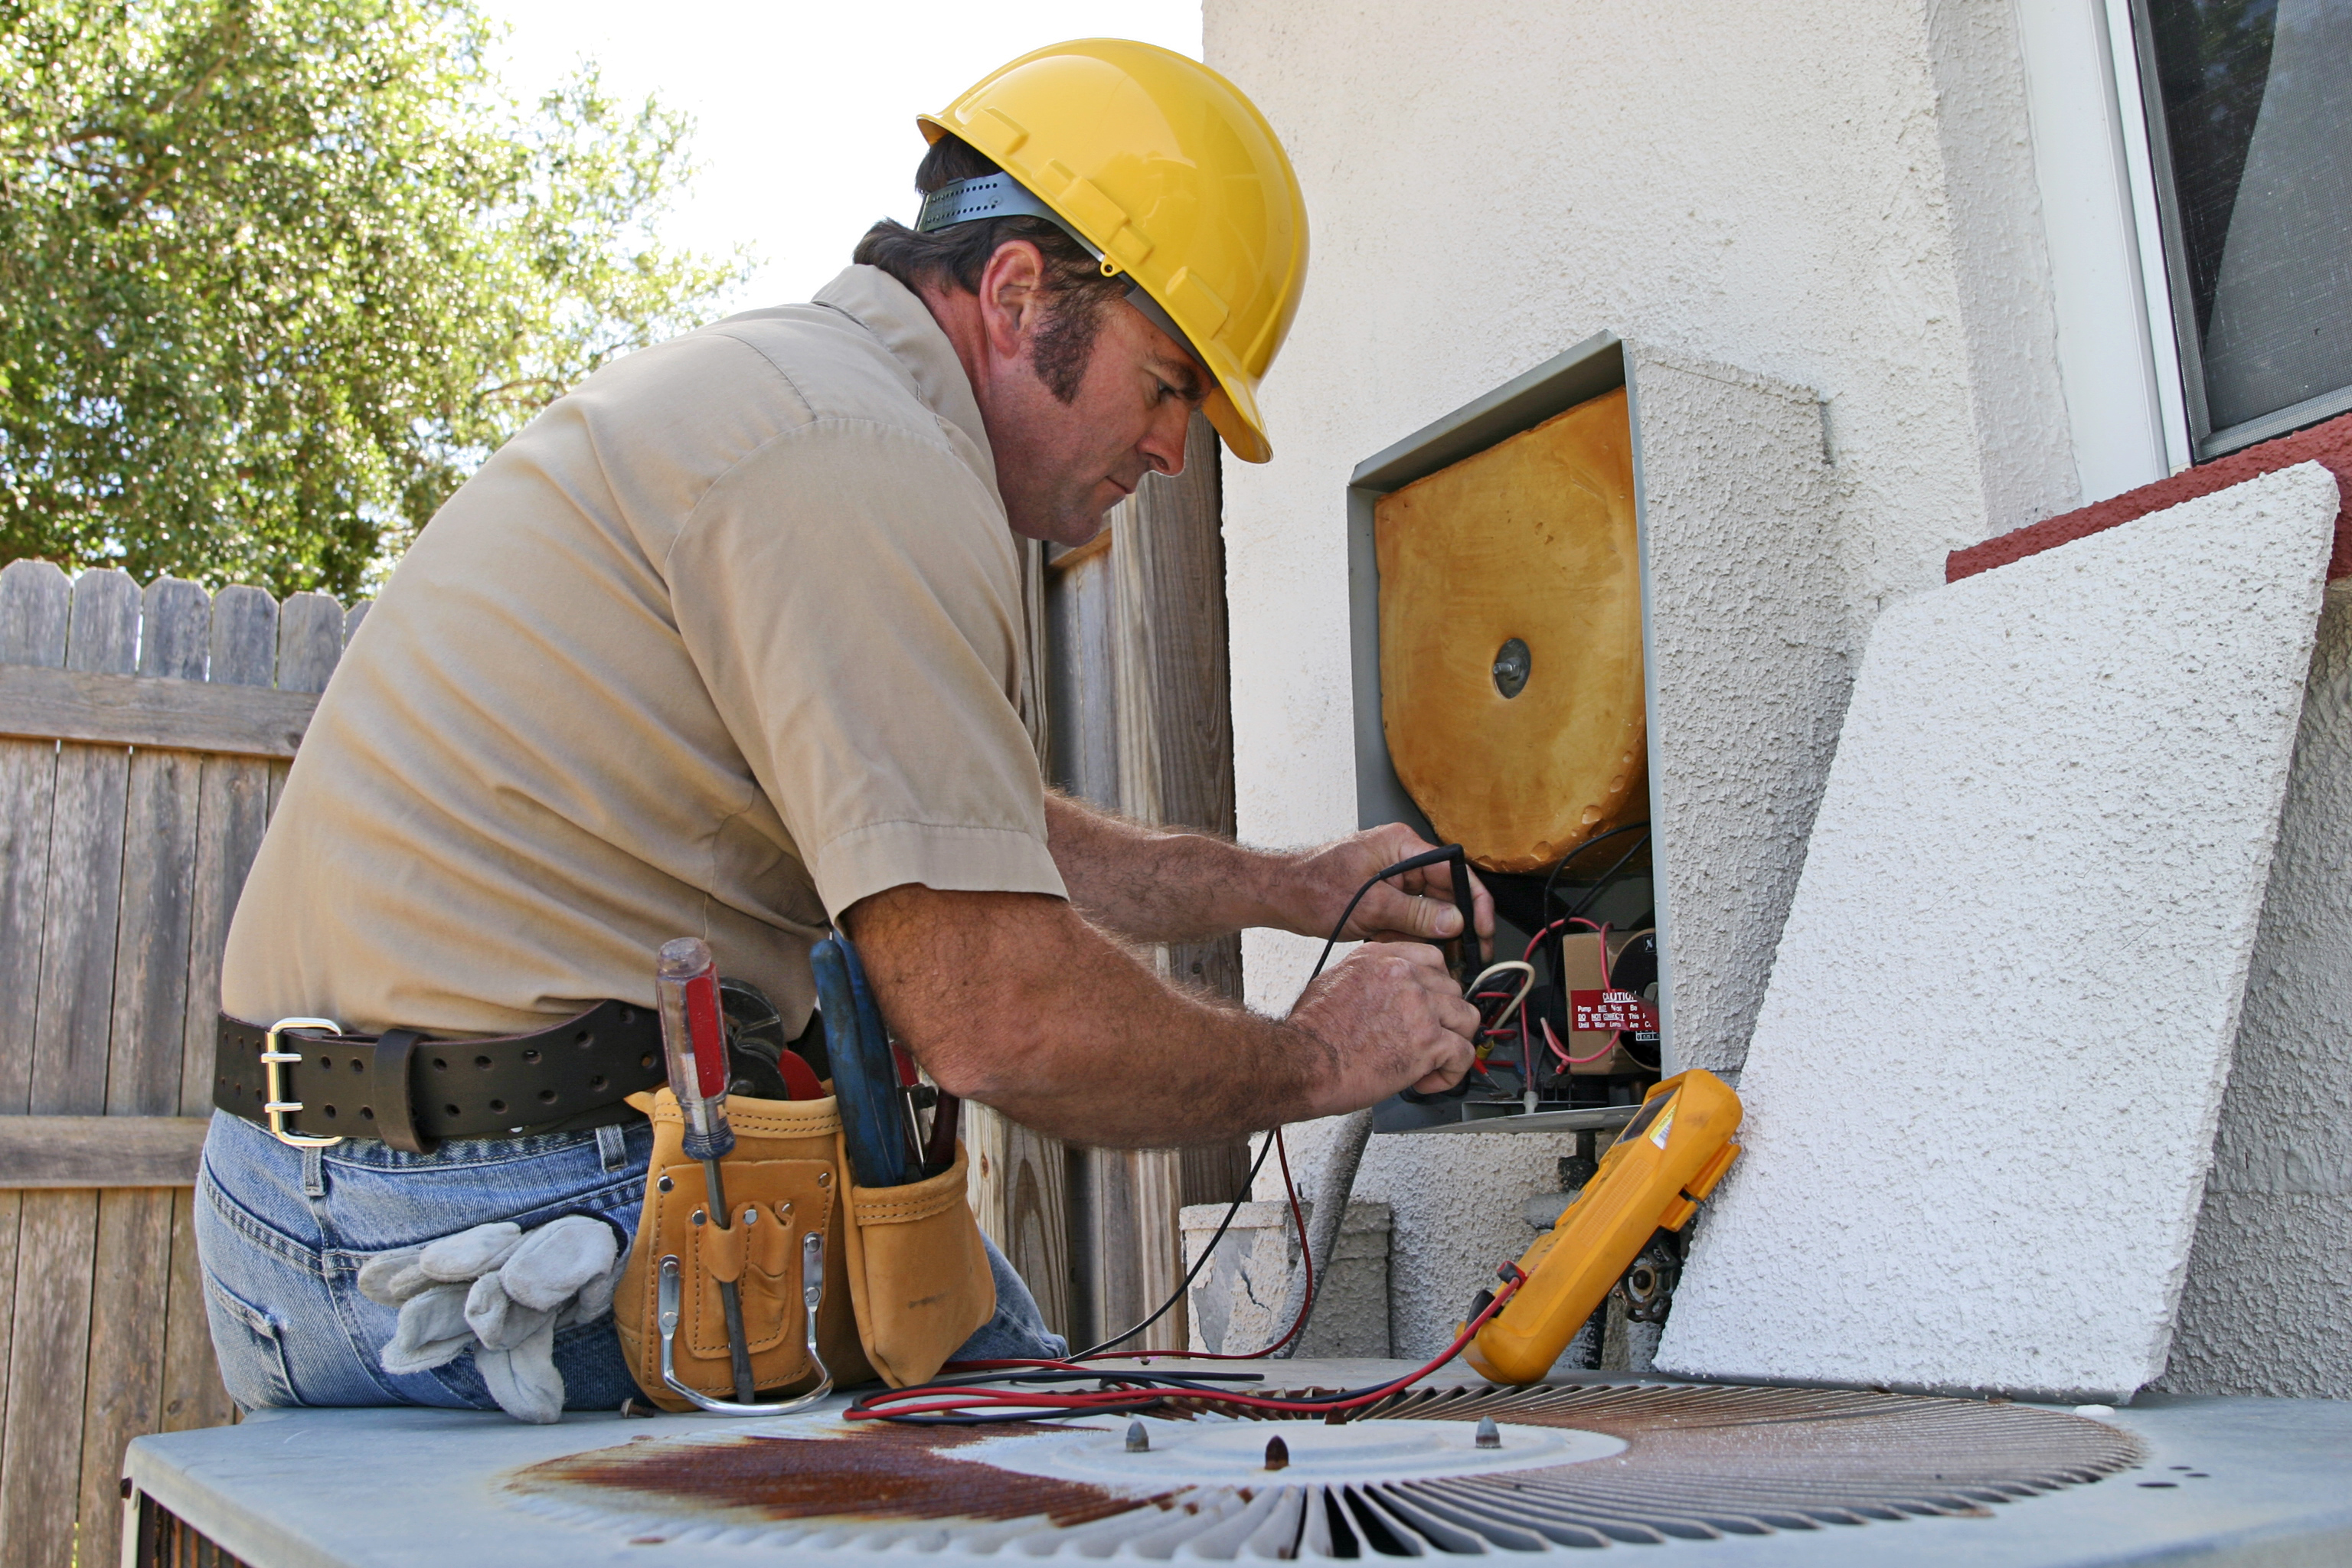 Five Tips before You Hire a Home Repair Handyman